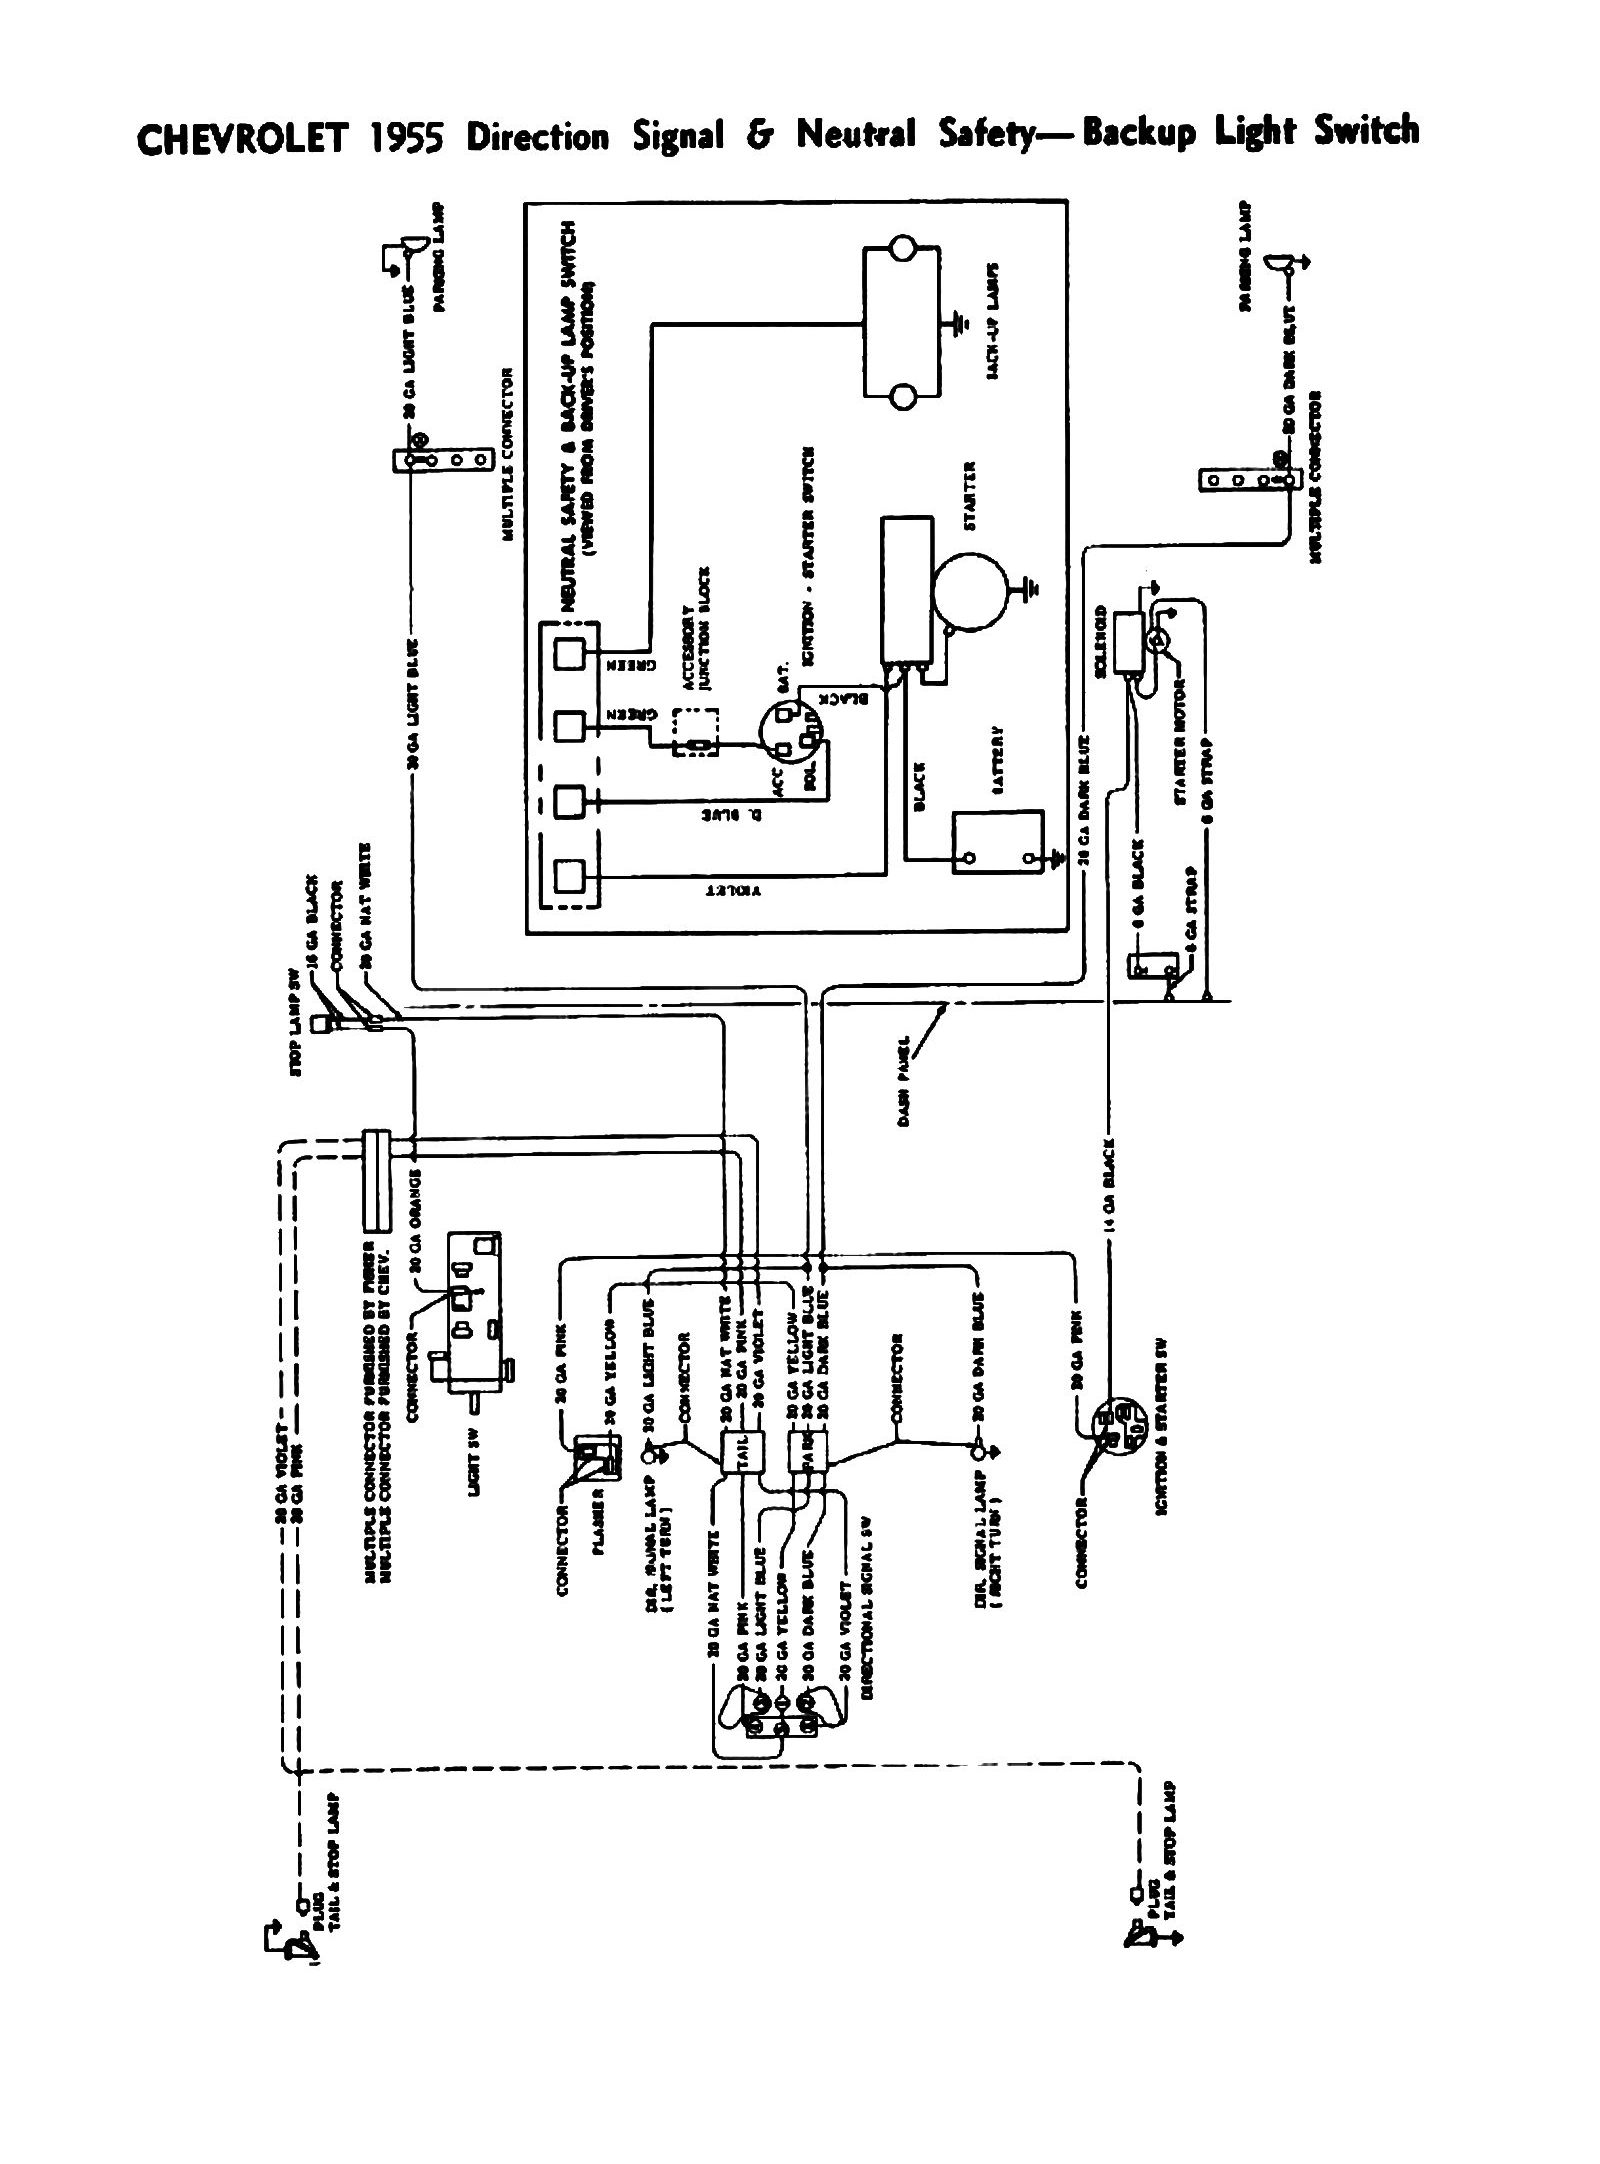 235 chevy wiring hot wiring diagram data rh 17 11 8 reisen fuer meister de